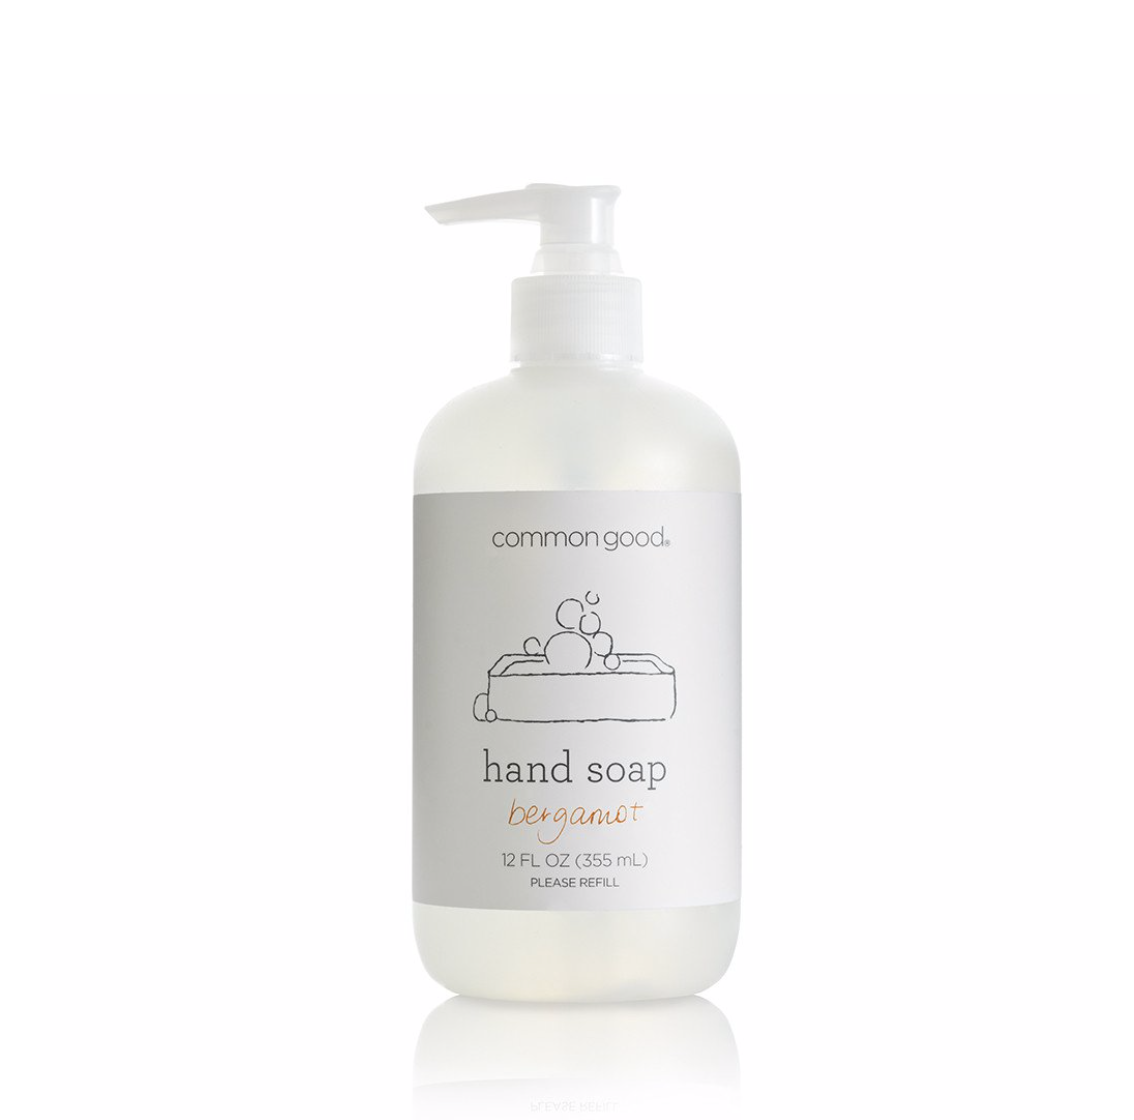 Common Good hand soap